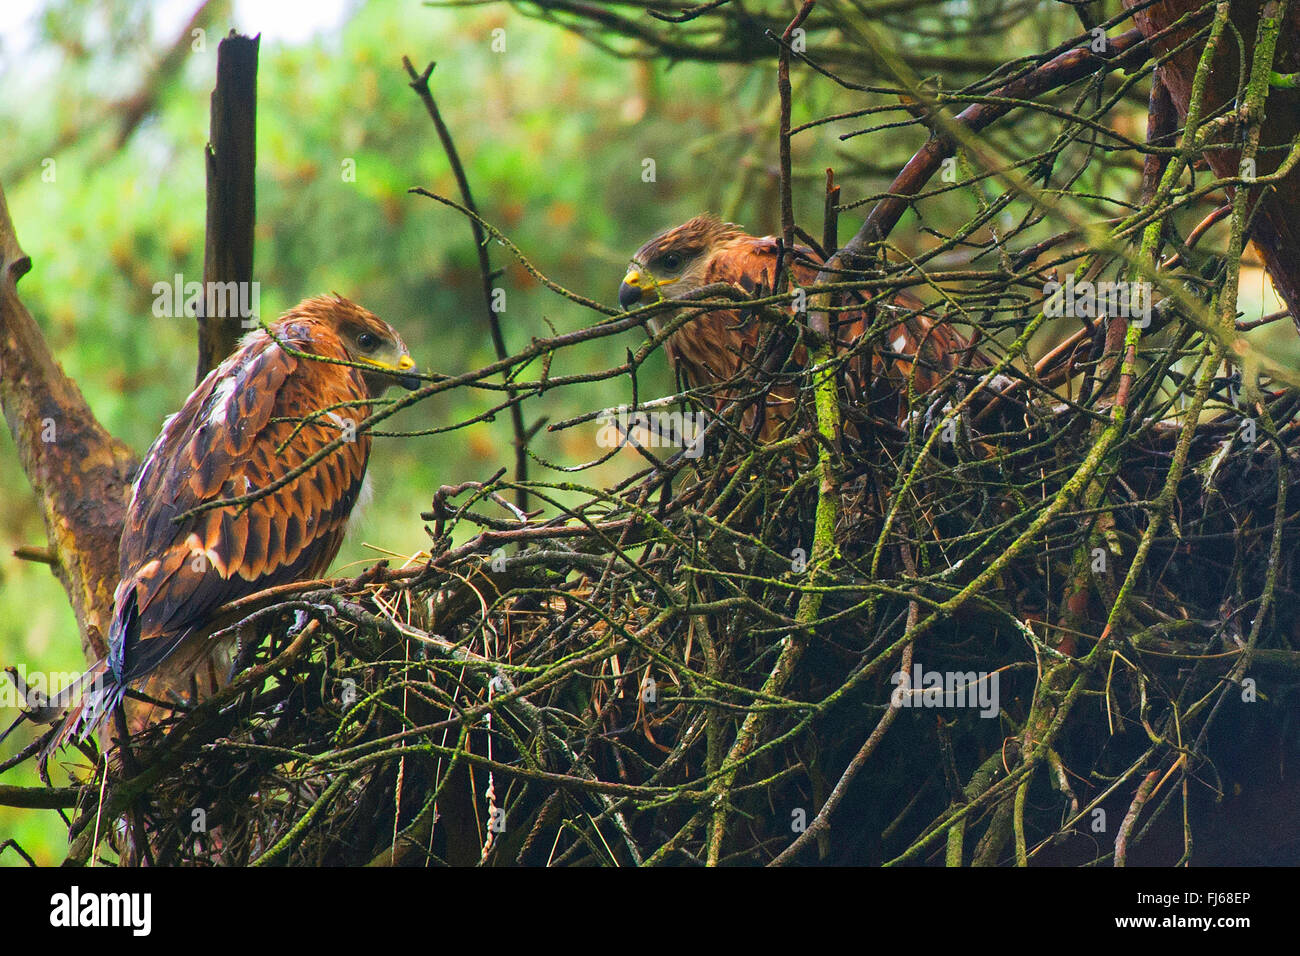 red kite (Milvus milvus), two young birds at the eyry on a tree, Germany, North Rhine-Westphalia - Stock Image